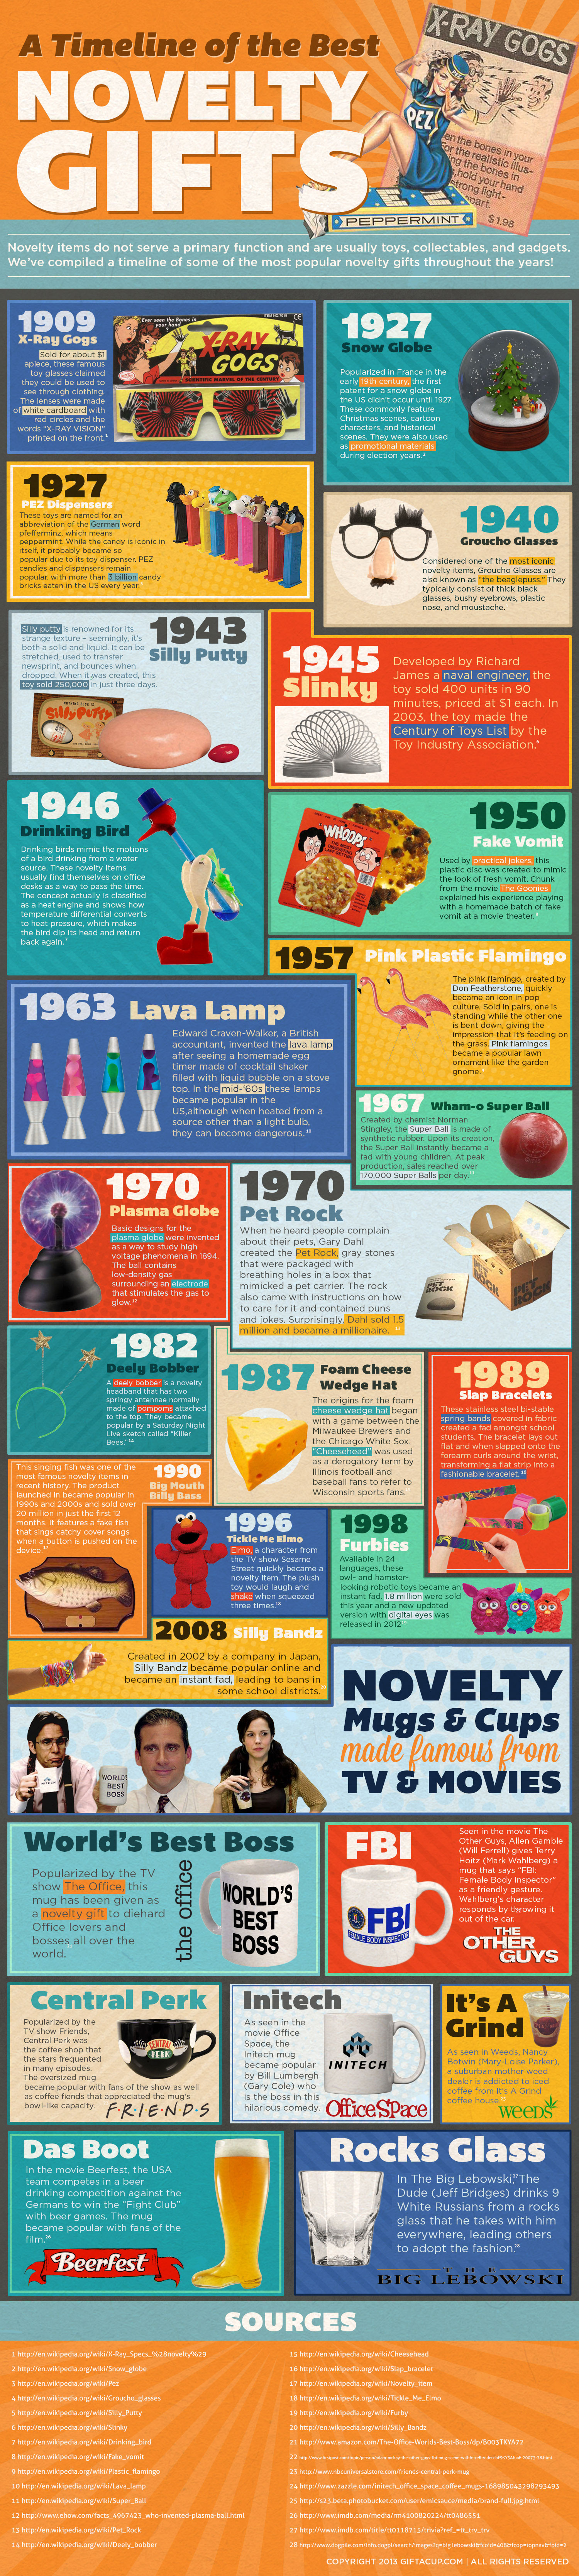 A Timeline of the Best Novelty Gifts  Infographic